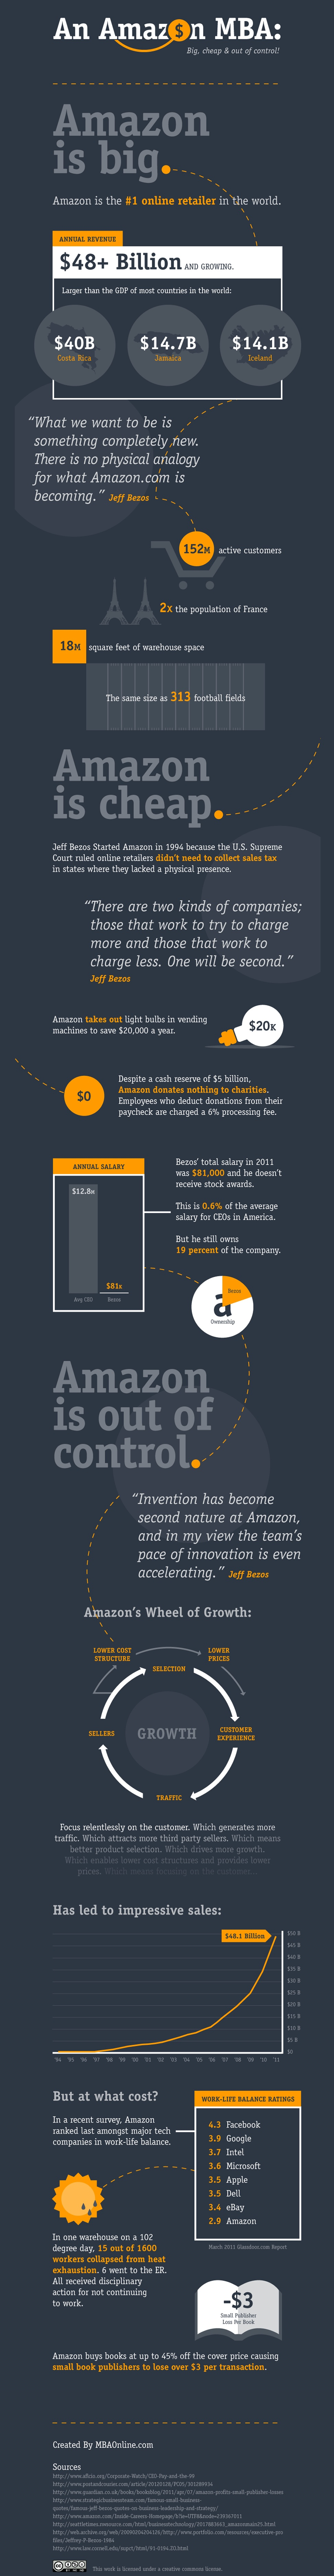 An-Amazon-Mba-infographic